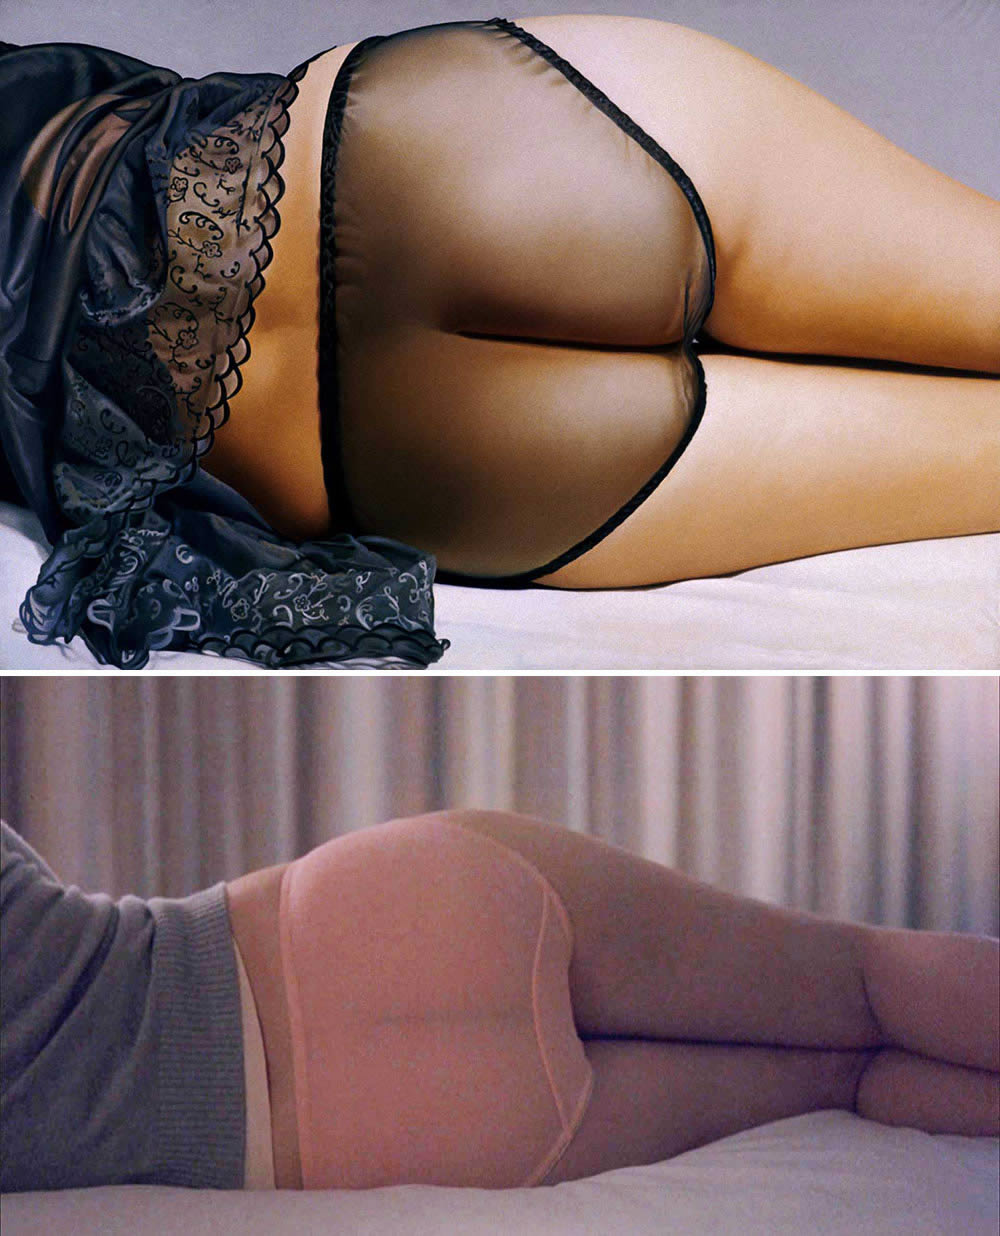 """Top: John Kacere's oil painting """"Jutta"""" (1973). Bottom: Charlotte (Johansson) laying on a bed in """"Lost in Translation"""" (2003; directed by Sofia Coppola)."""